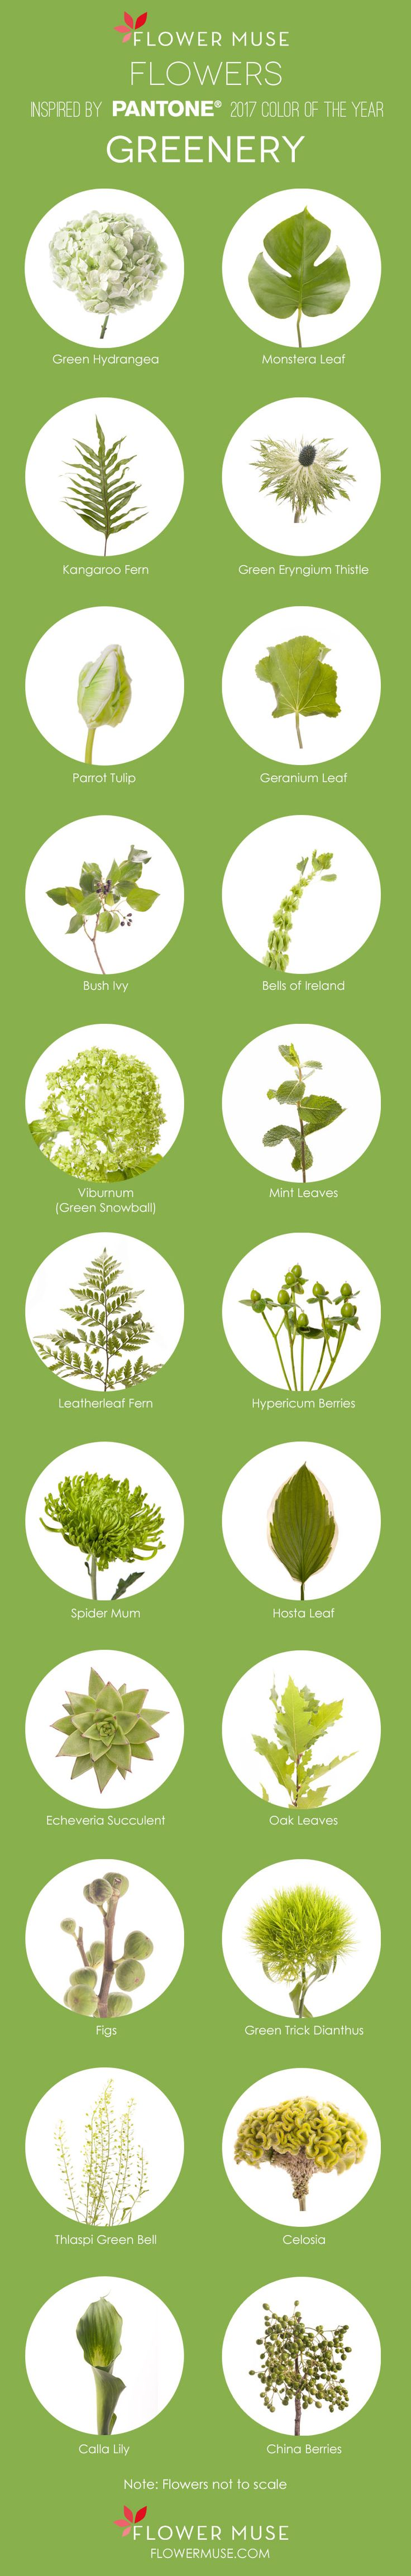 2017 Pantone Color of the Year: Greenery - Flower inspiration on Flower Muse Blog: http://www.flowermuse.com/blog/2017-color-of-the-year-greenery-flower-inspiration/